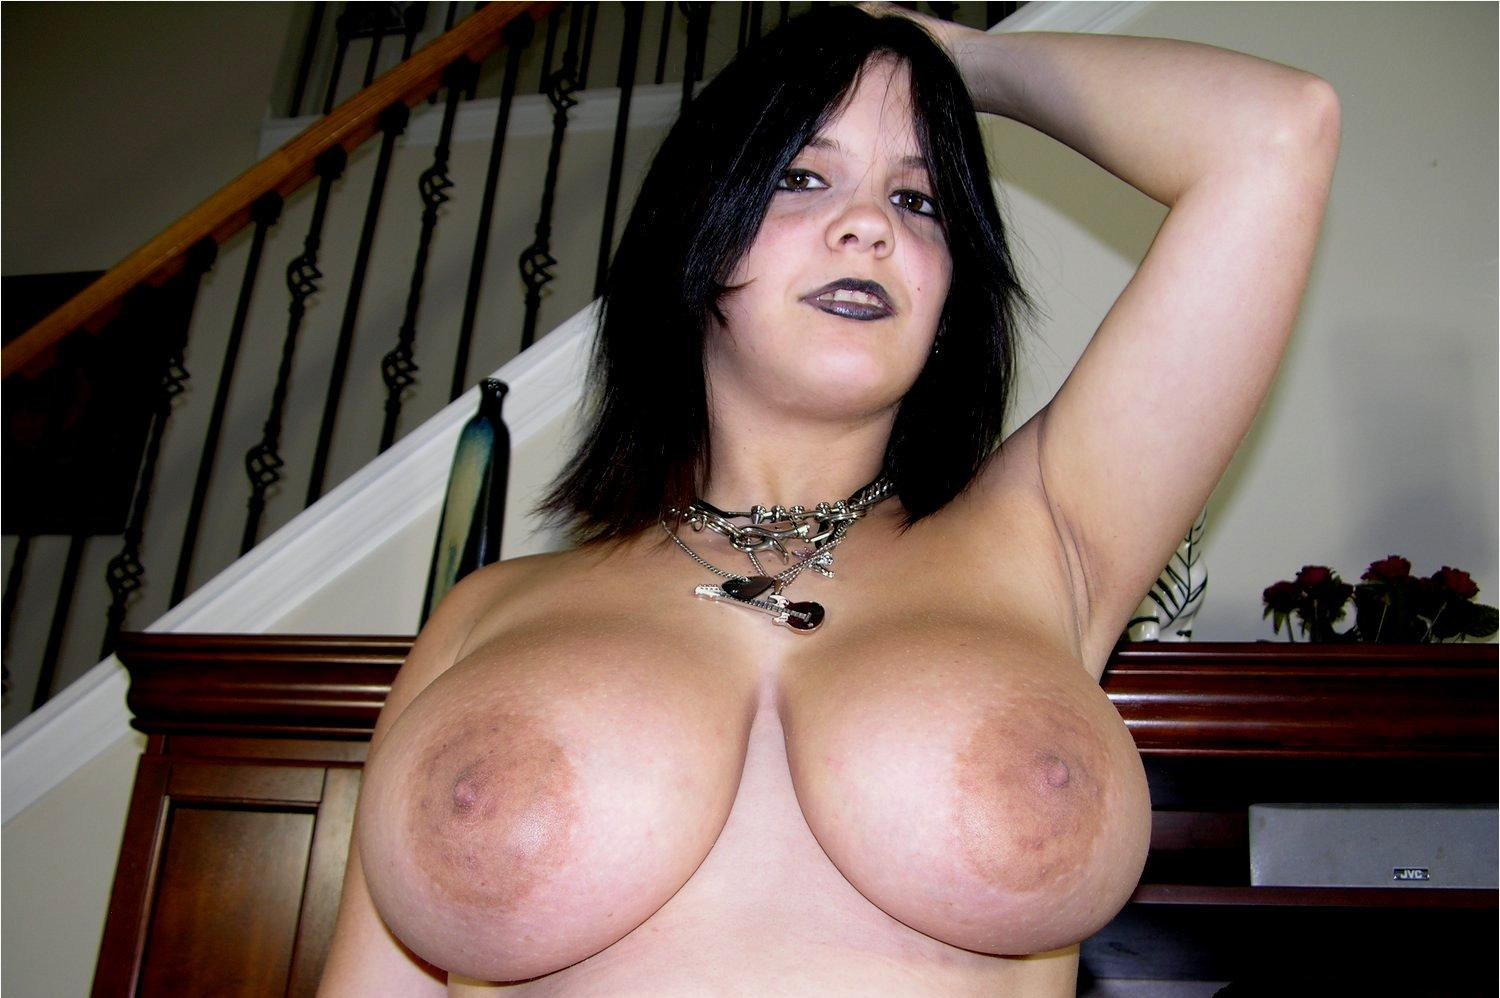 Seems Big goth boobs